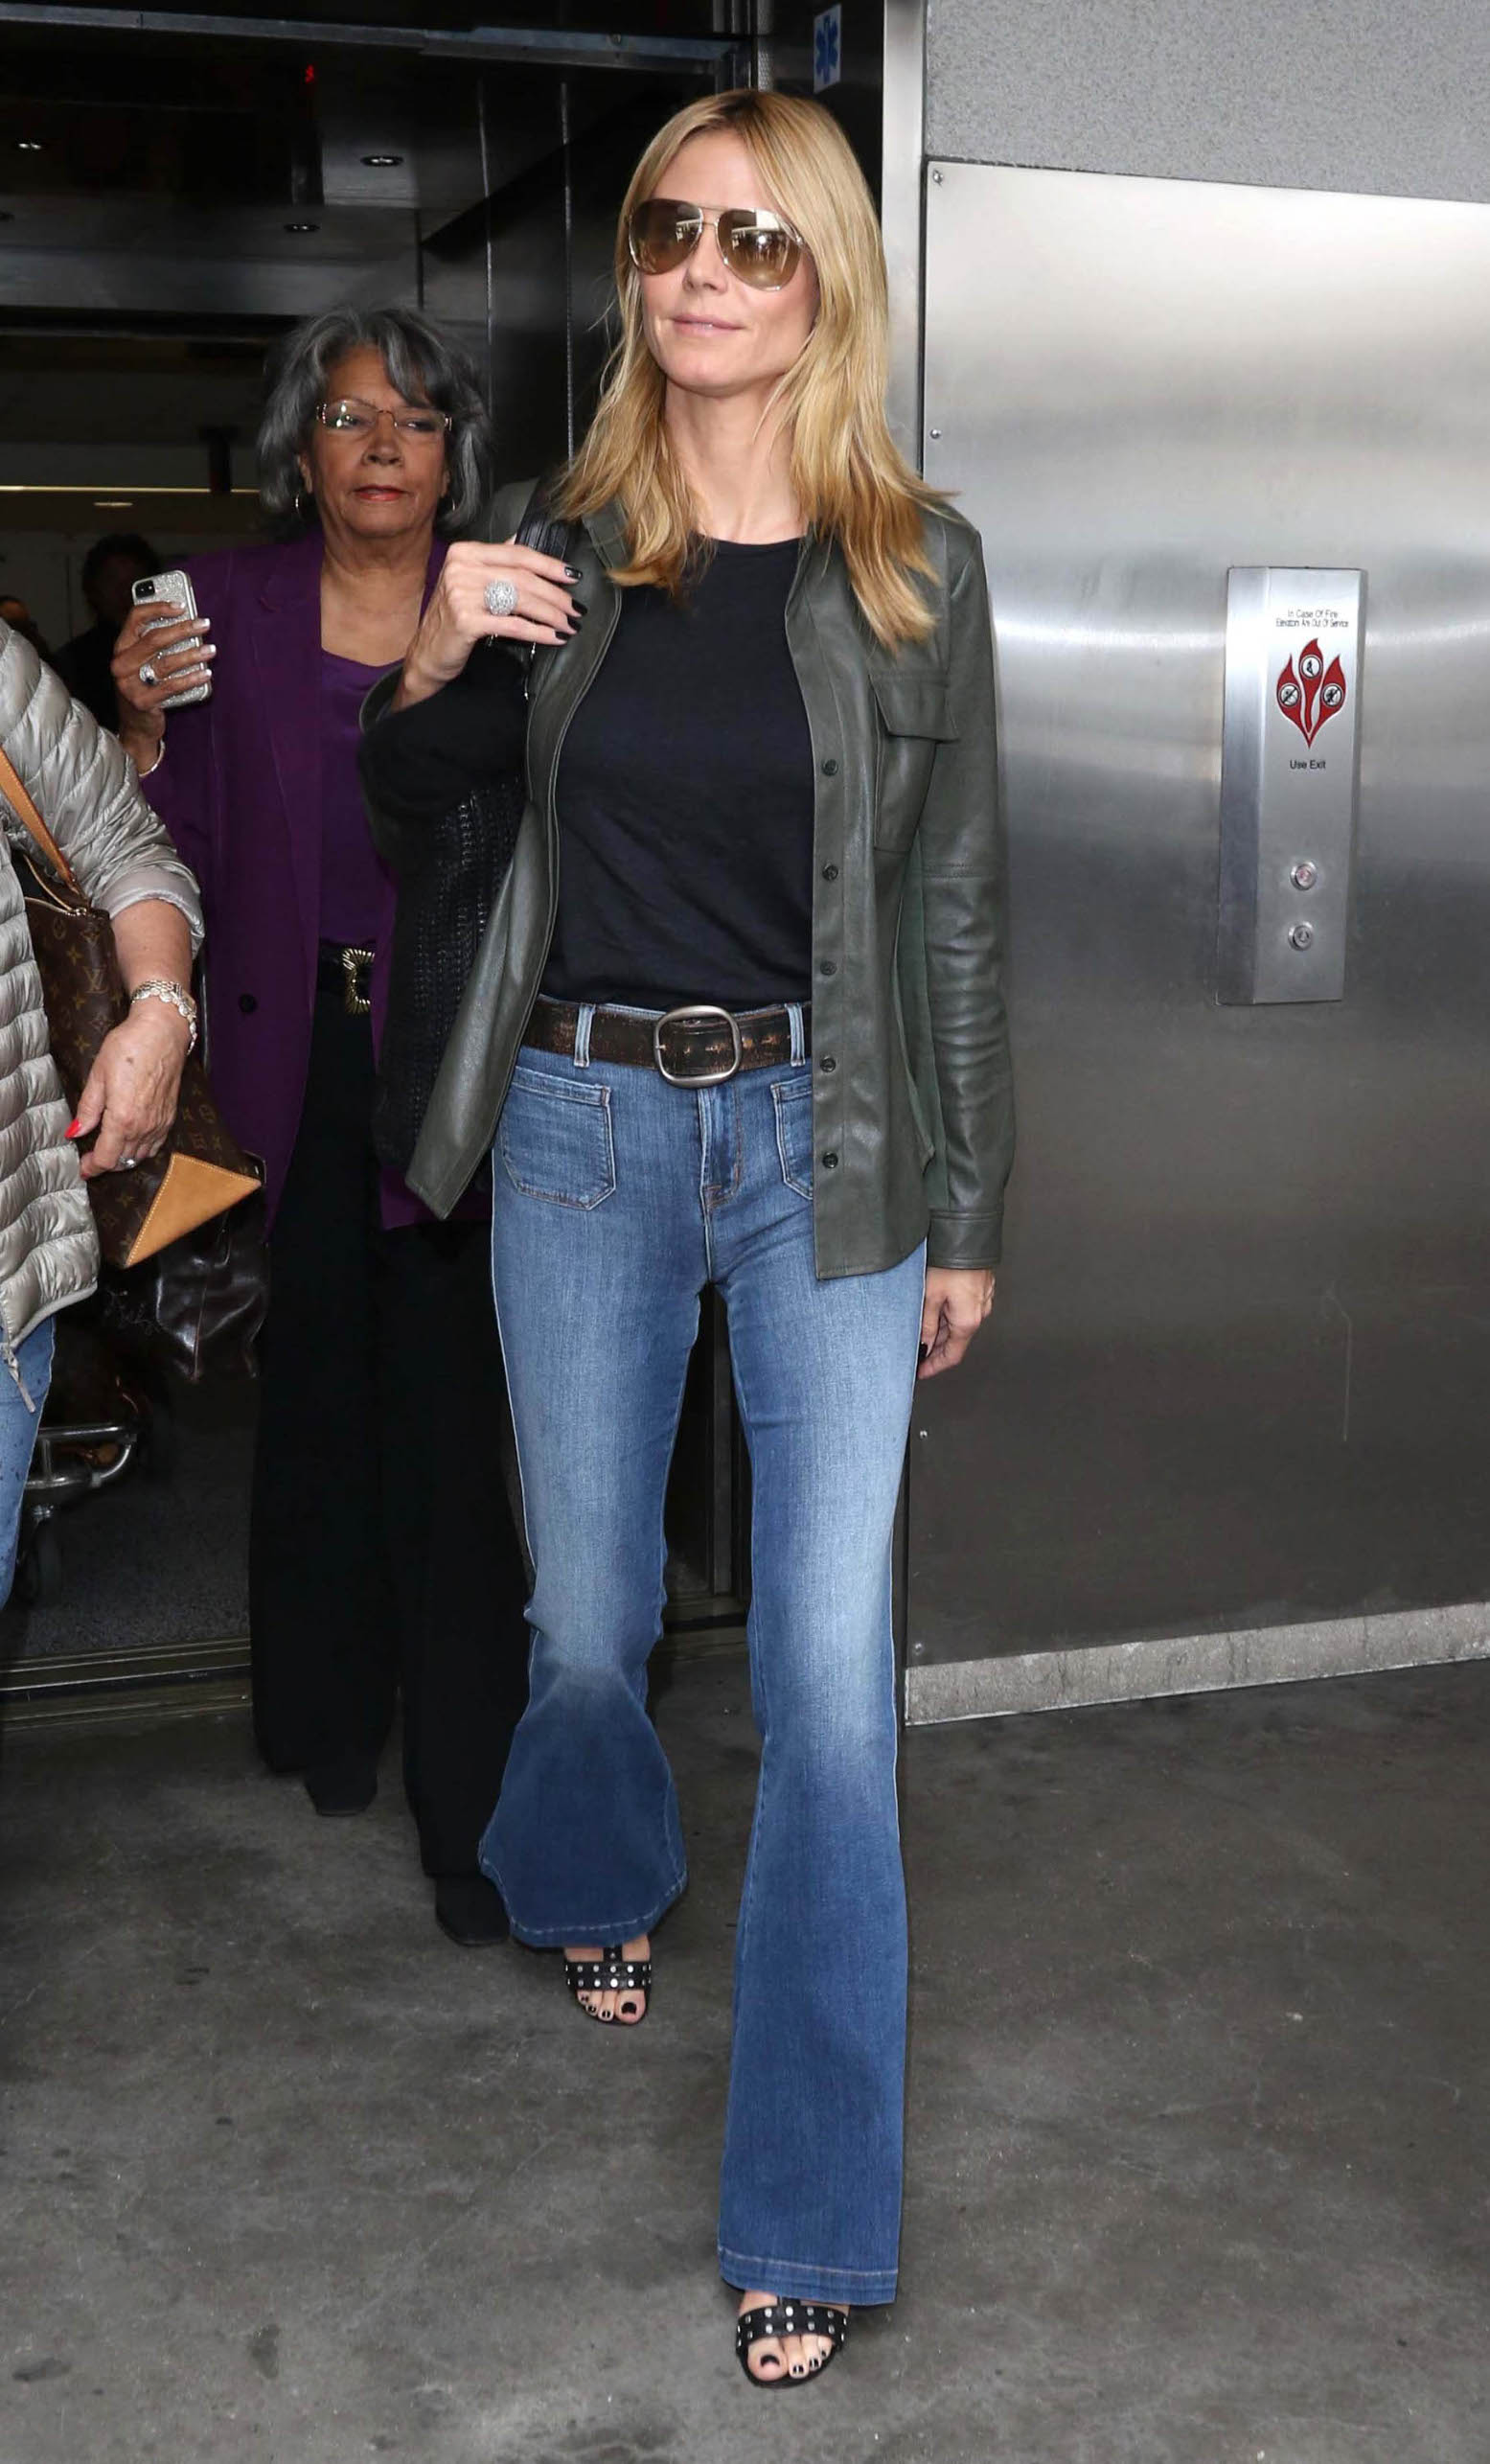 Heidi Klum is seen at LAX Airport. (Los Angeles, CA), Image: 246409633, License: Rights-managed, Restrictions: , Model Release: no, Credit line: JMA / StarMax / Profimedia